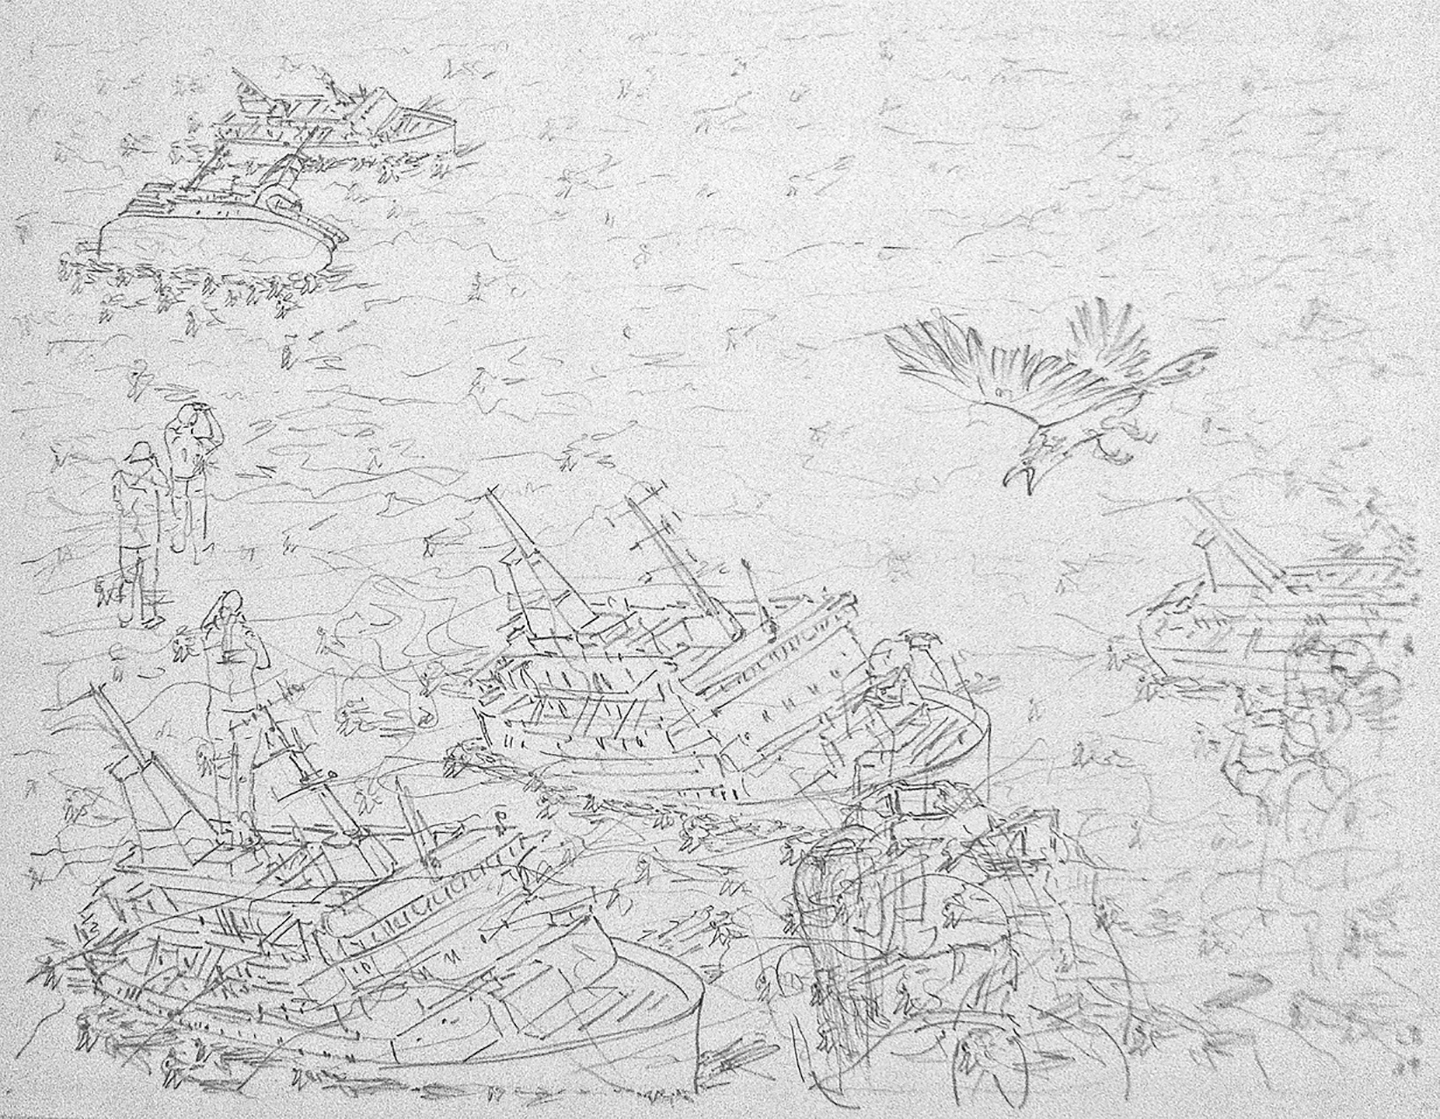 Leo Brunschwiler, sinking ships, dead redtails, tourists and attacking bird, pencil on polyester foil, 28 cm x 35 cm , 2019